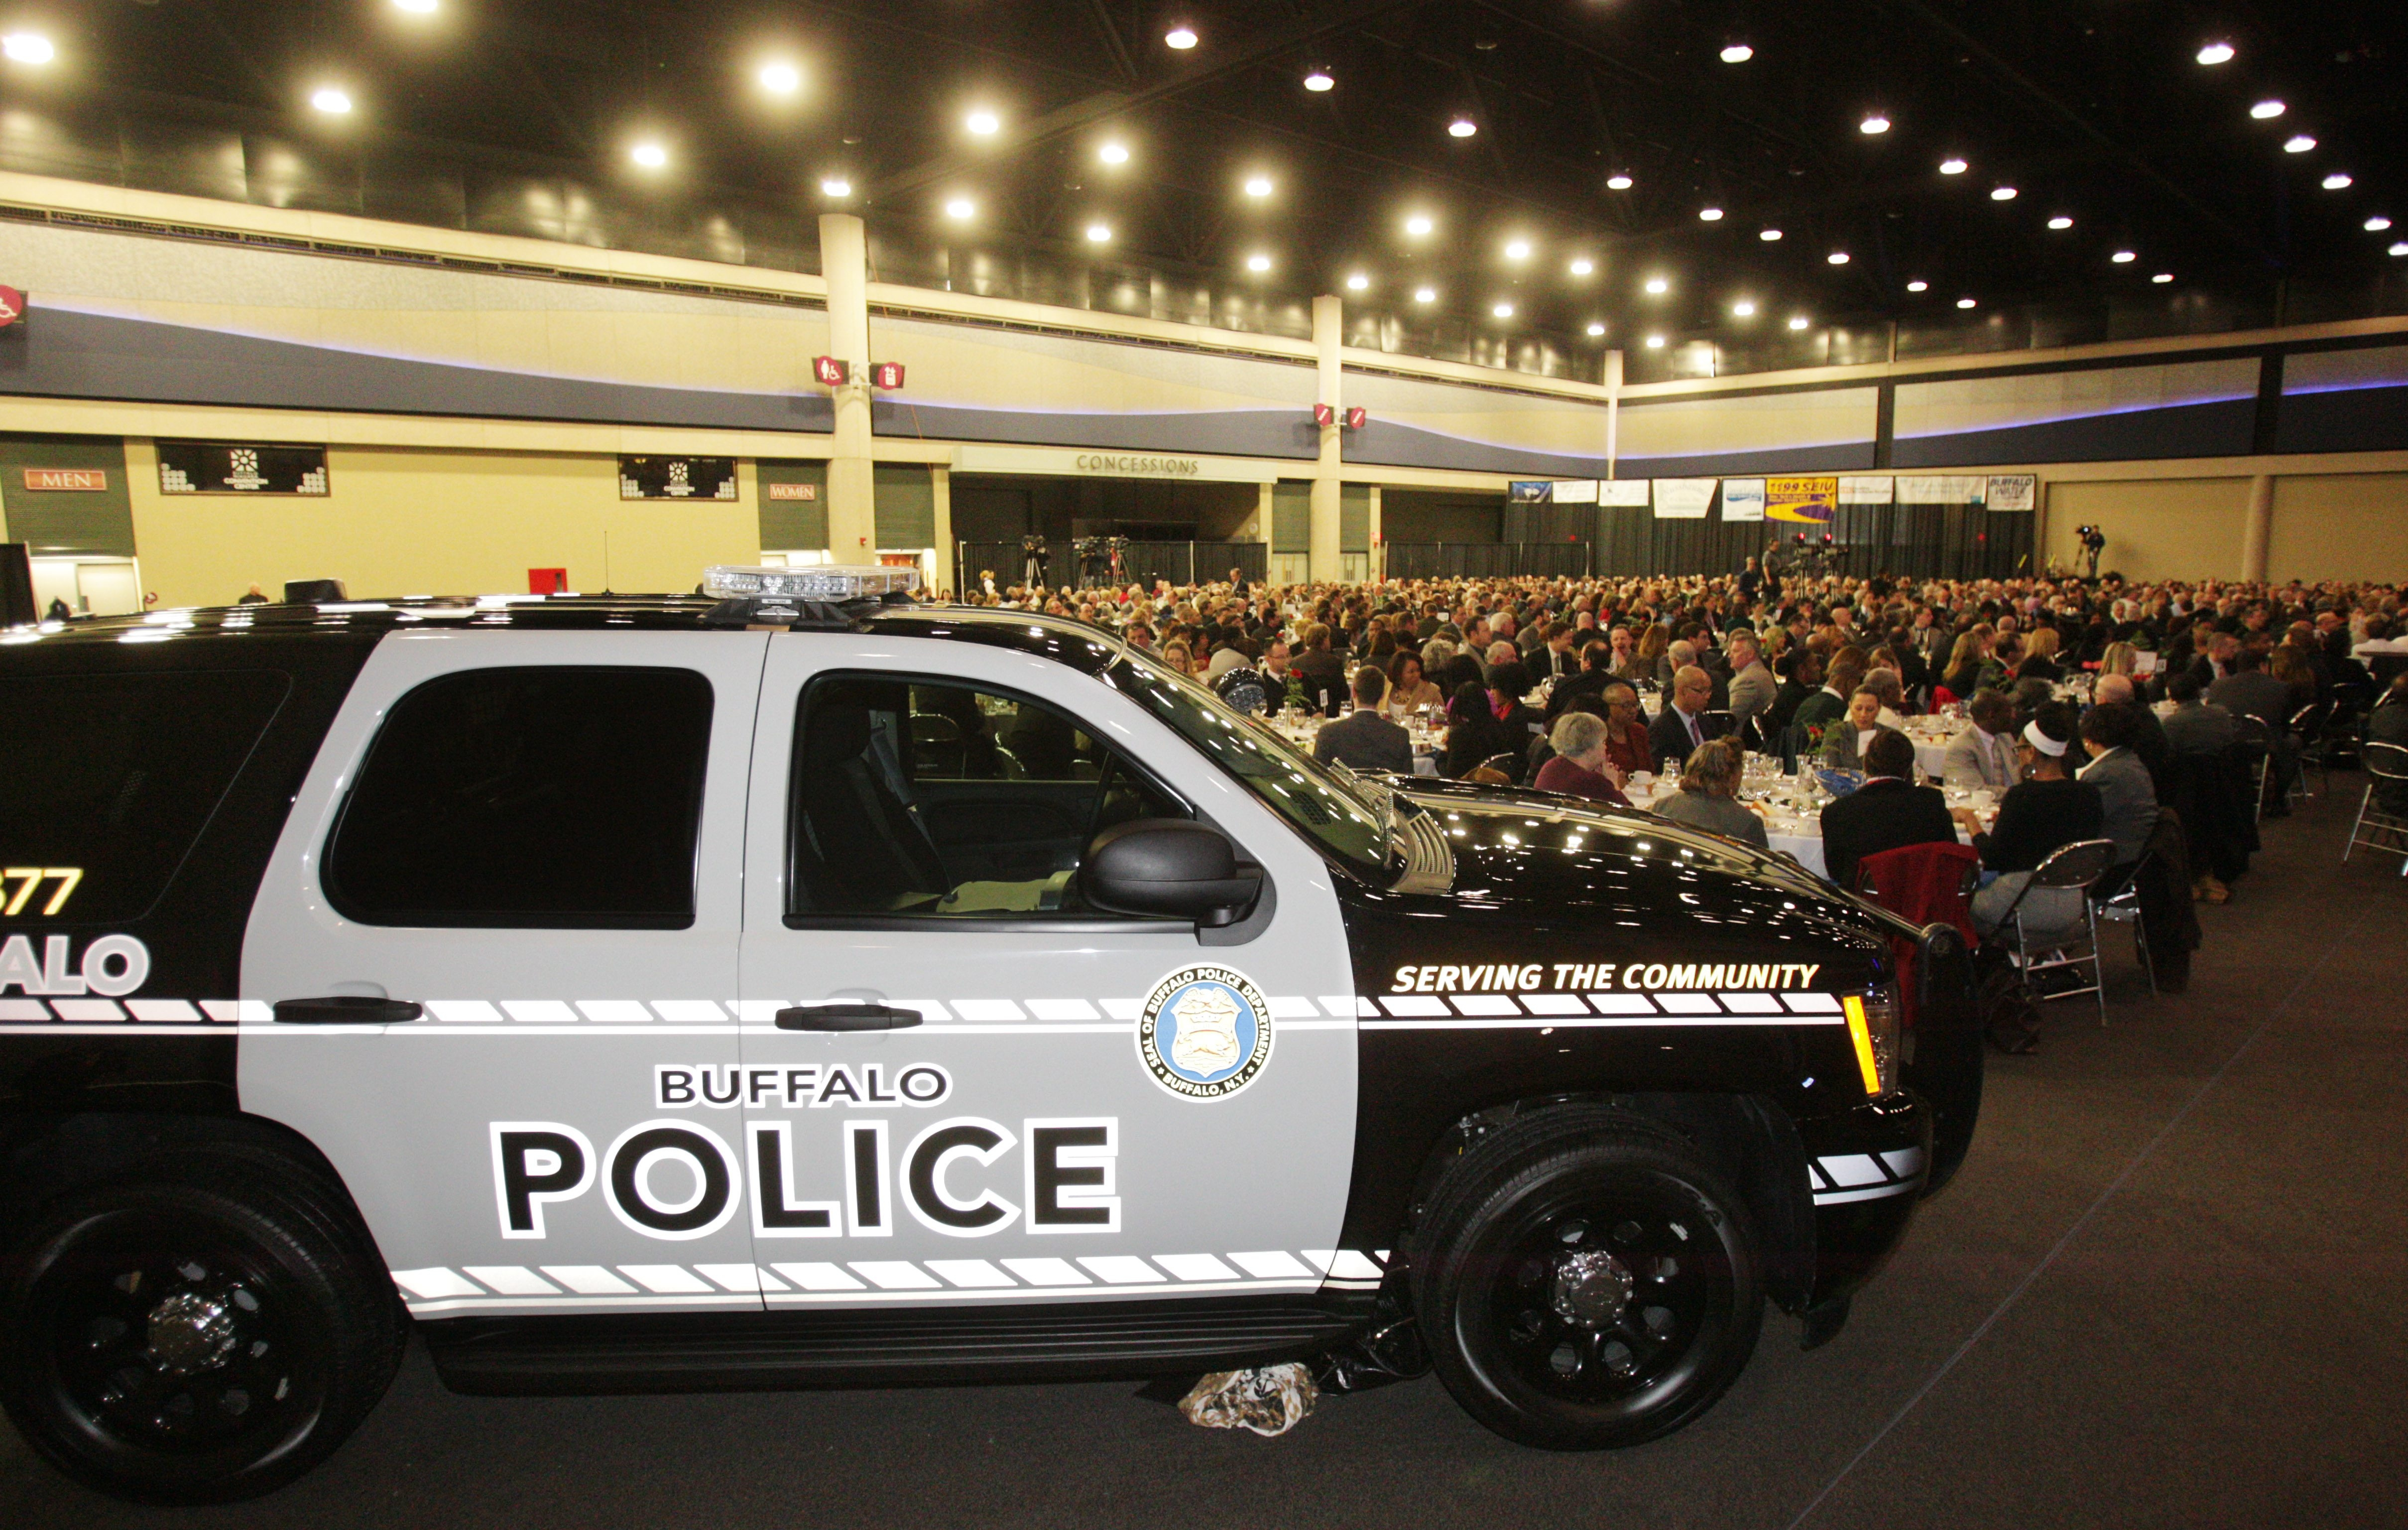 One the Buffalo Police Department's new police cruisers was unveiled during Mayor Byron W. Brown's State of the City speech Friday.